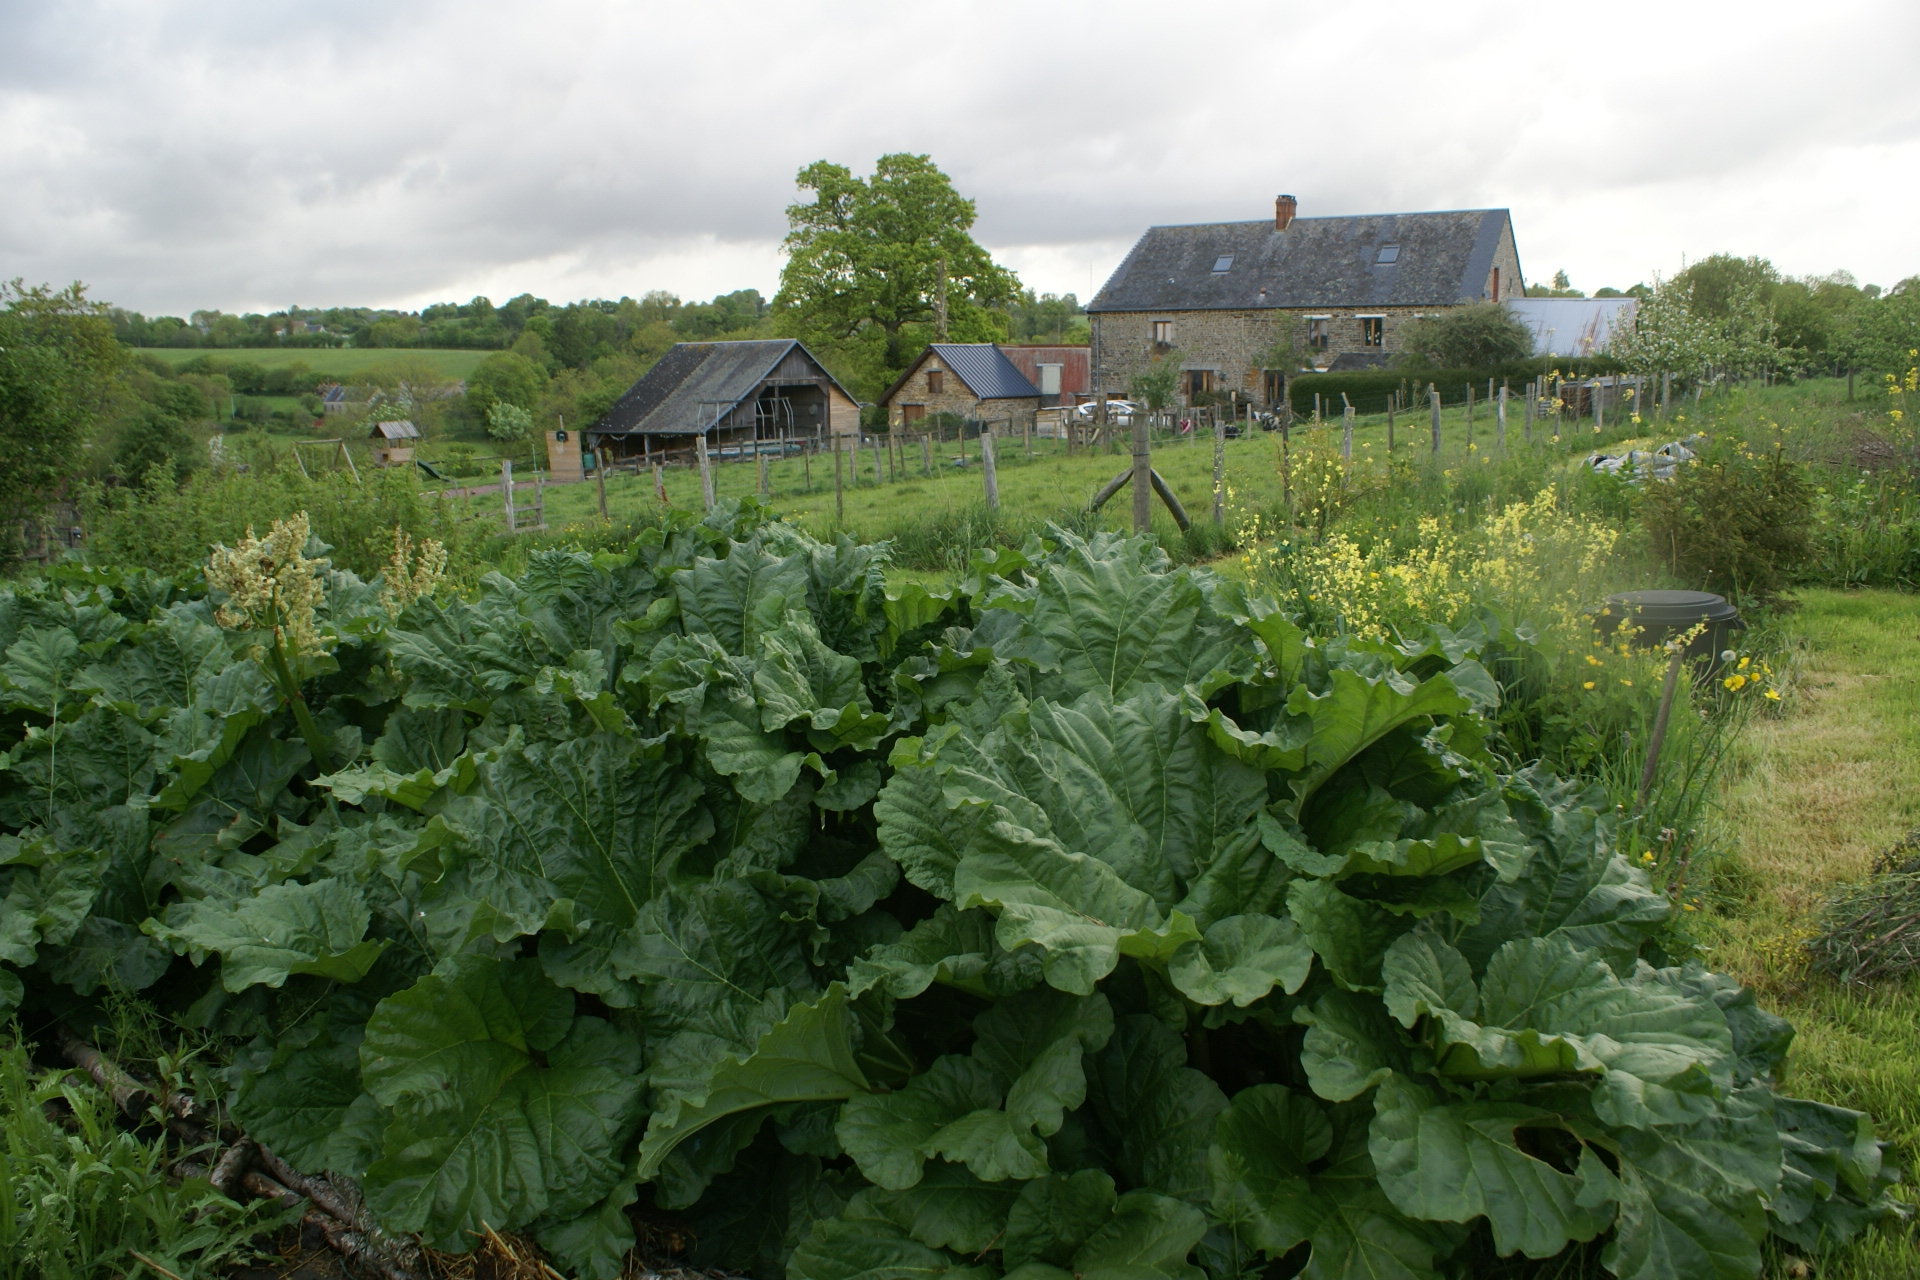 Rhubarb at Eco-Gites of Lenault, a 5 person gite in Normandy.